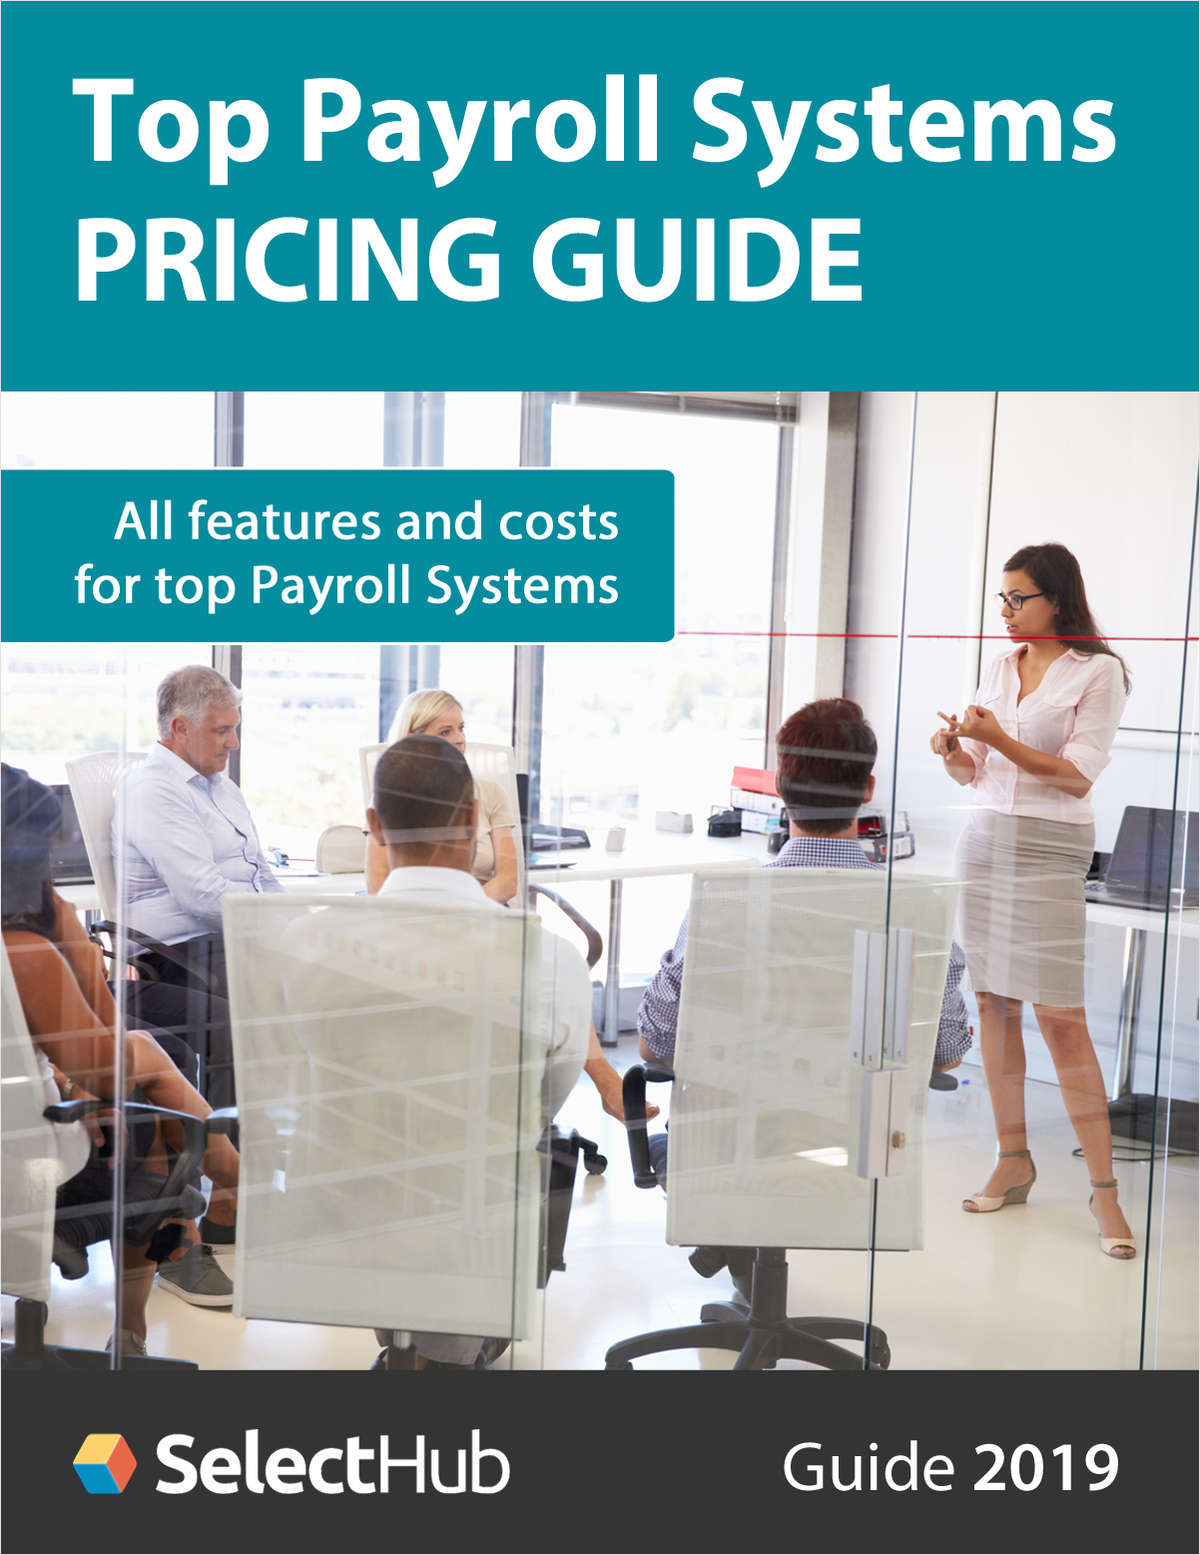 Top 10 Payroll Systems Pricing Guide